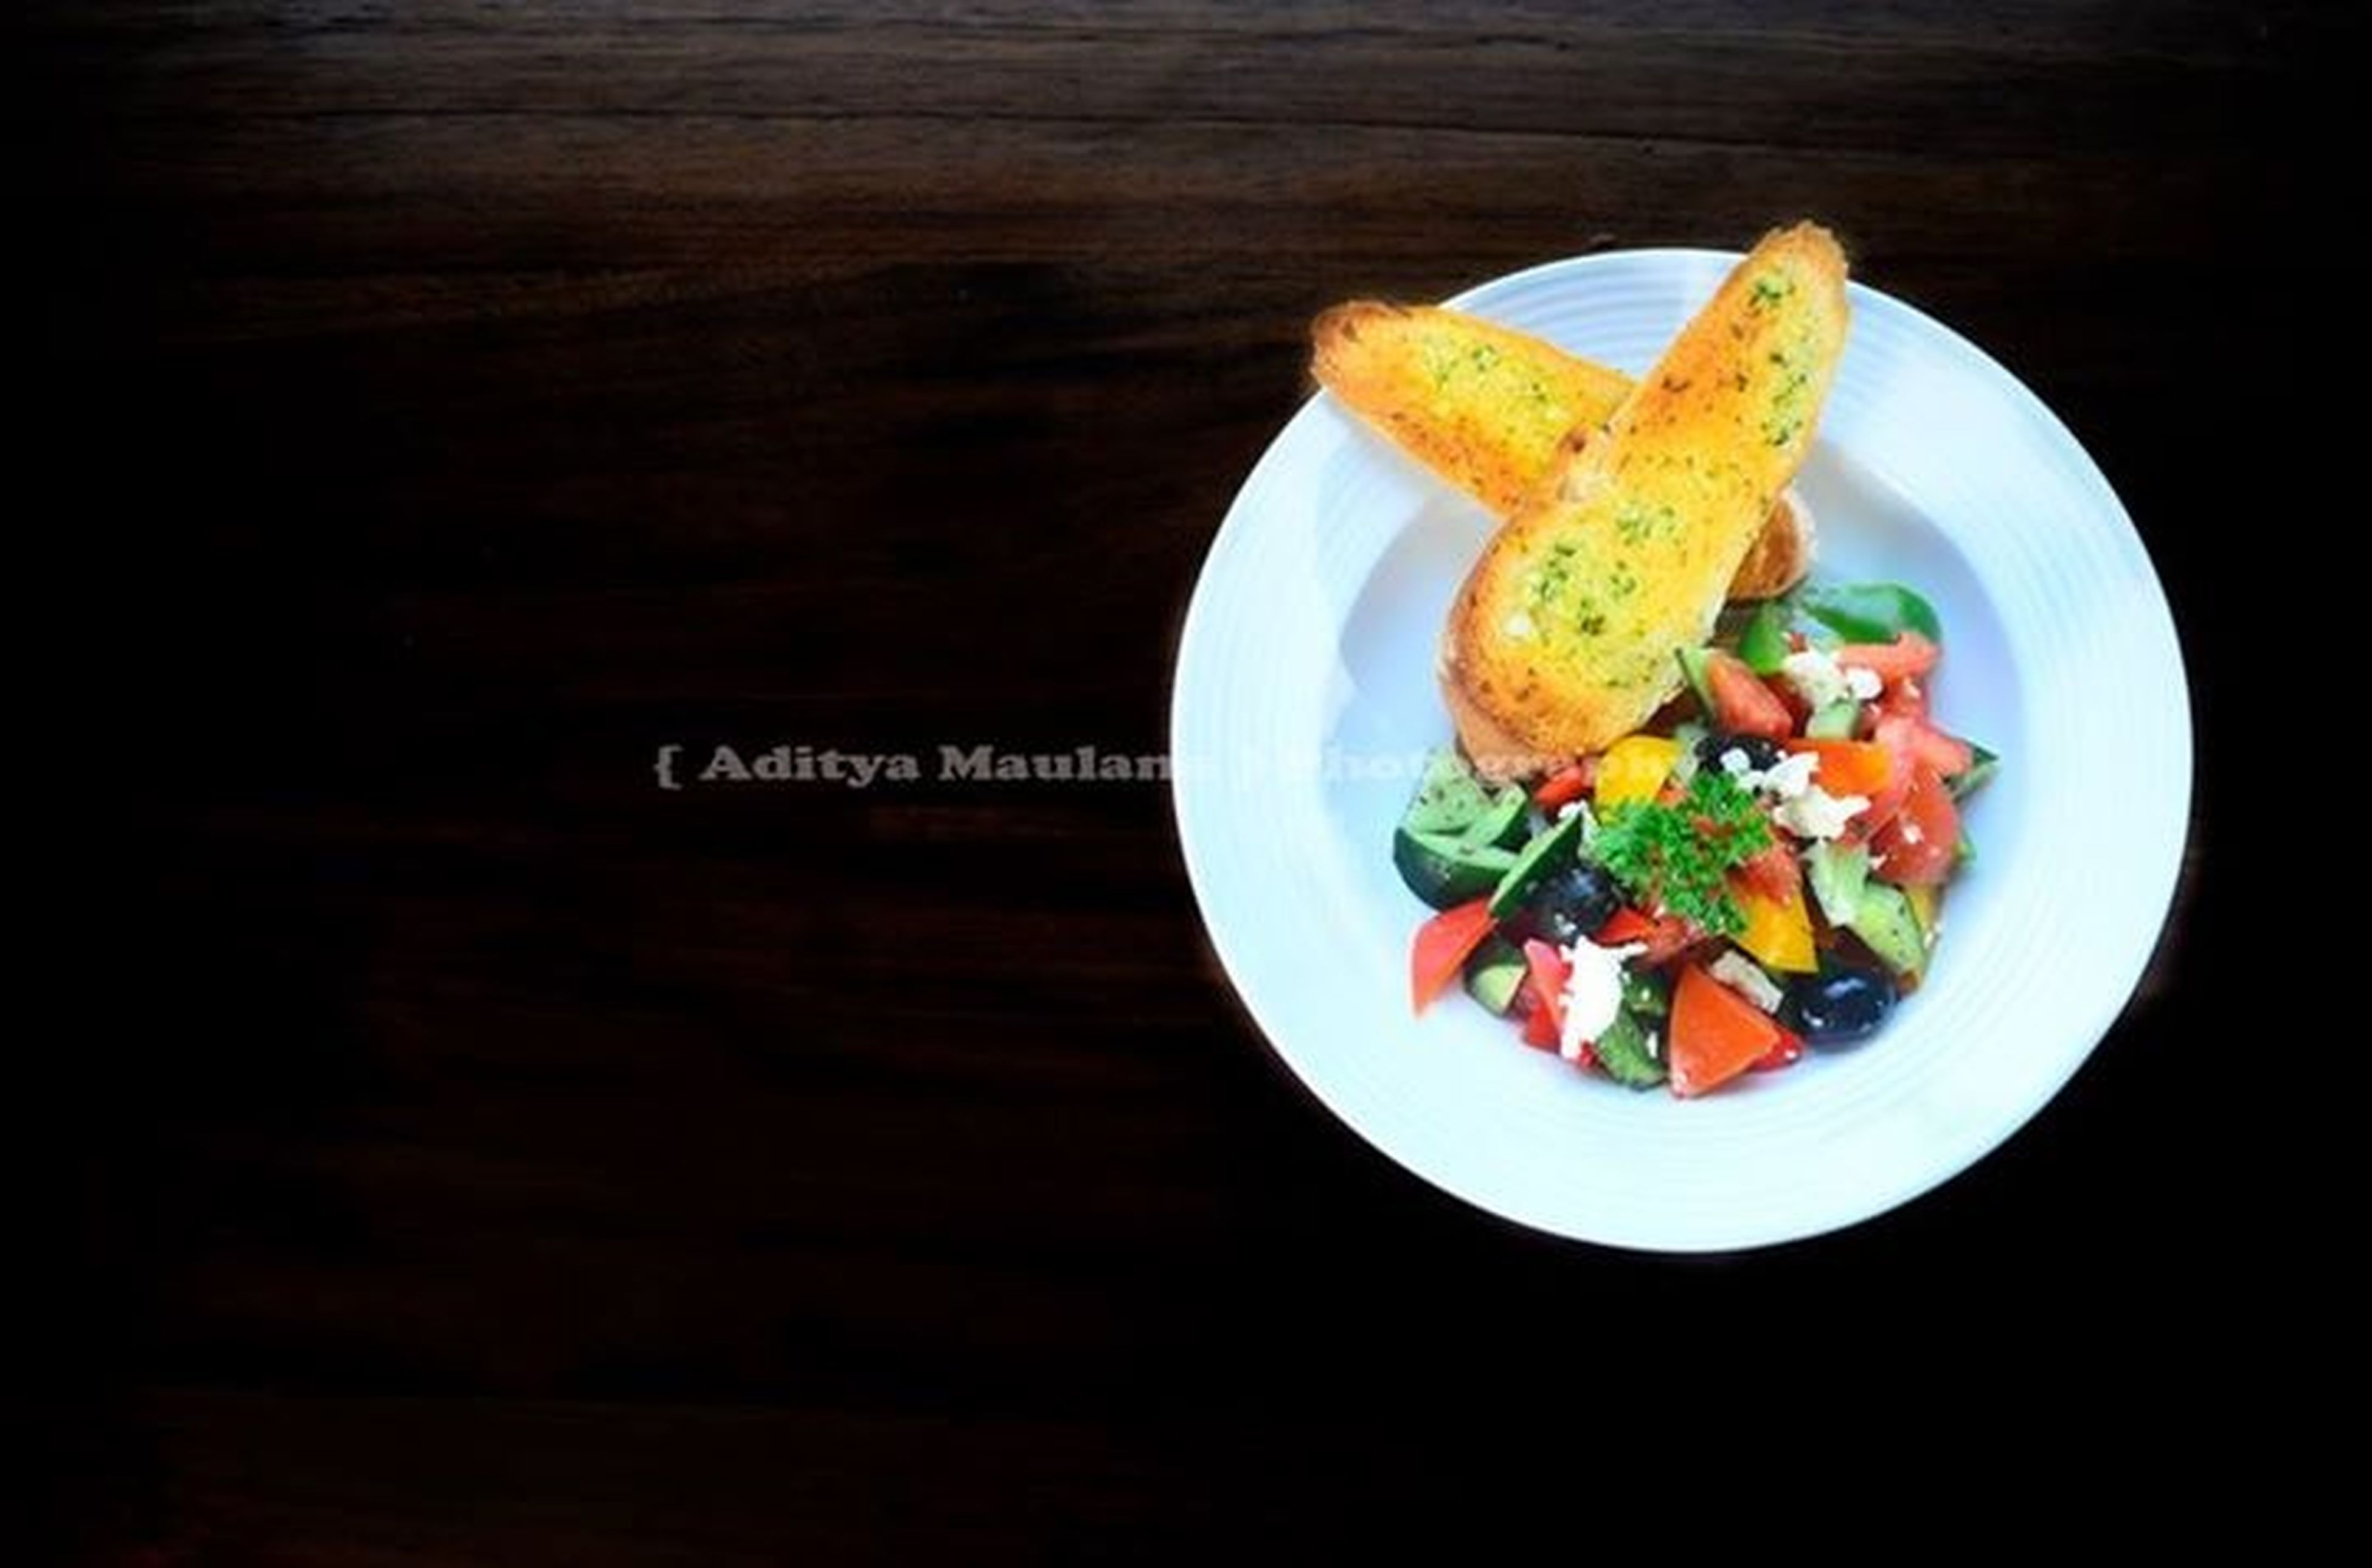 food, food and drink, indoors, freshness, still life, healthy eating, ready-to-eat, plate, table, meal, vegetable, close-up, serving size, meat, high angle view, indulgence, slice, tomato, no people, cooked